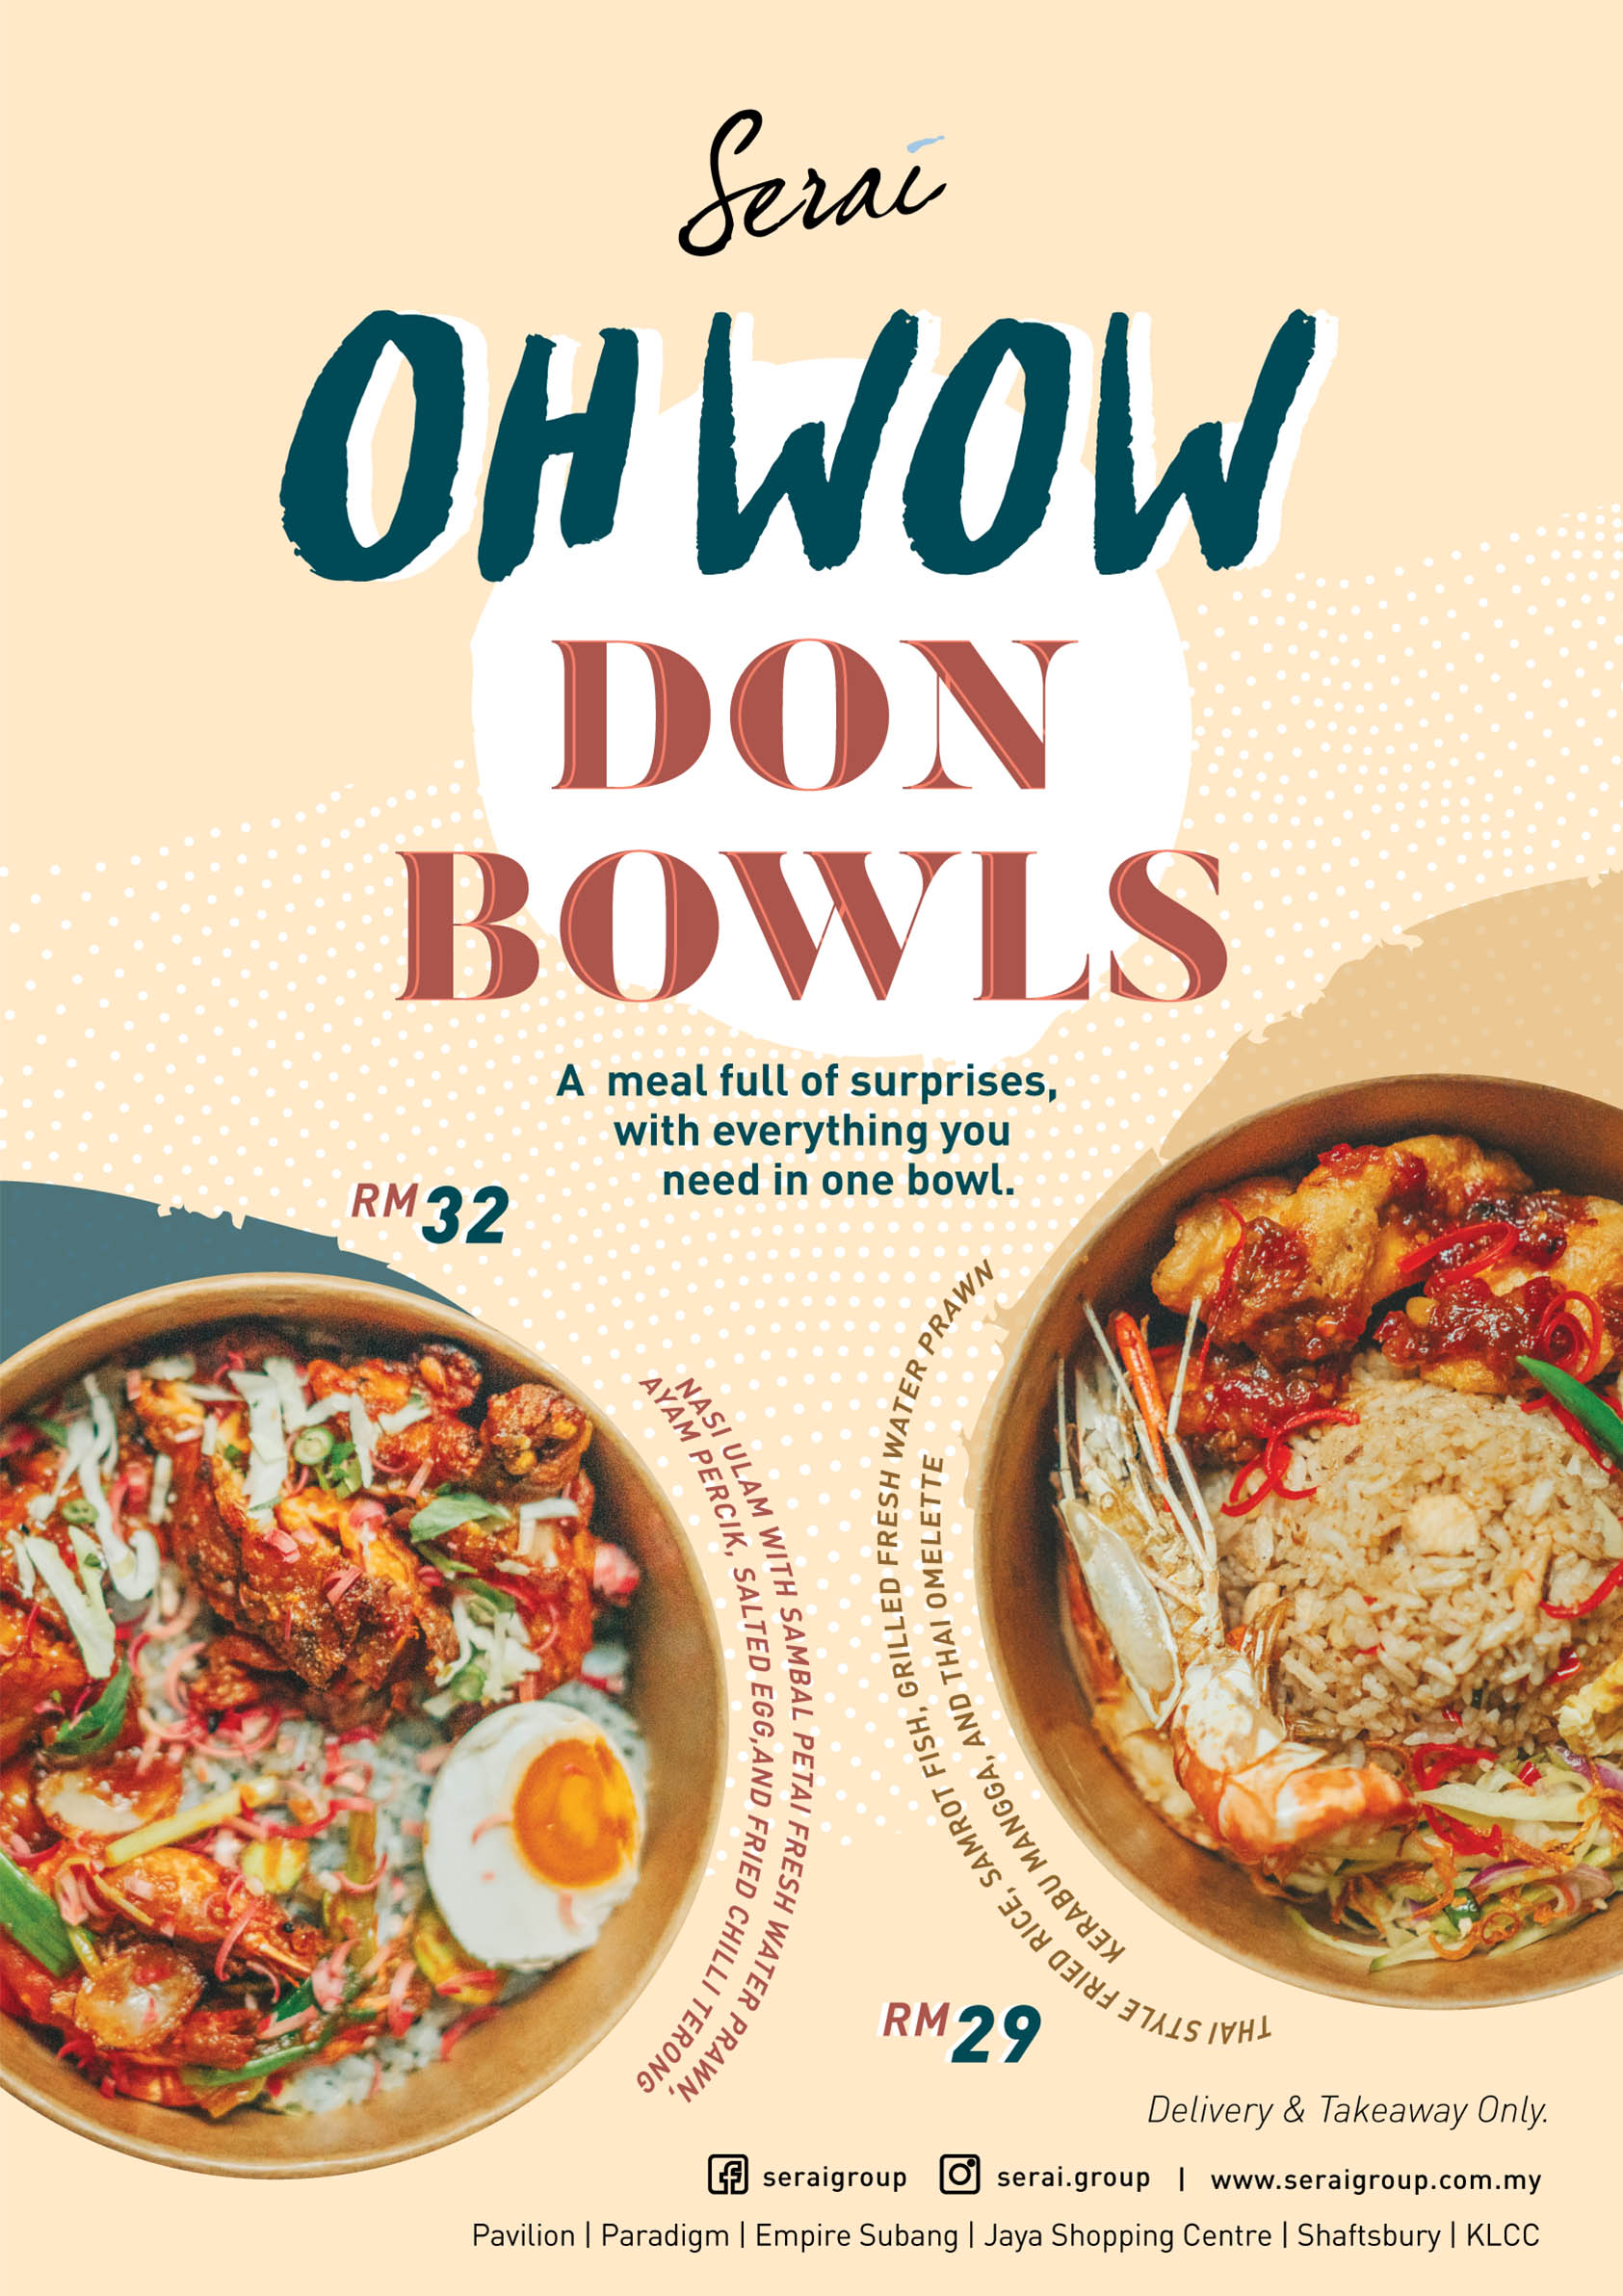 serai group pokebowl provides catering in malaysia